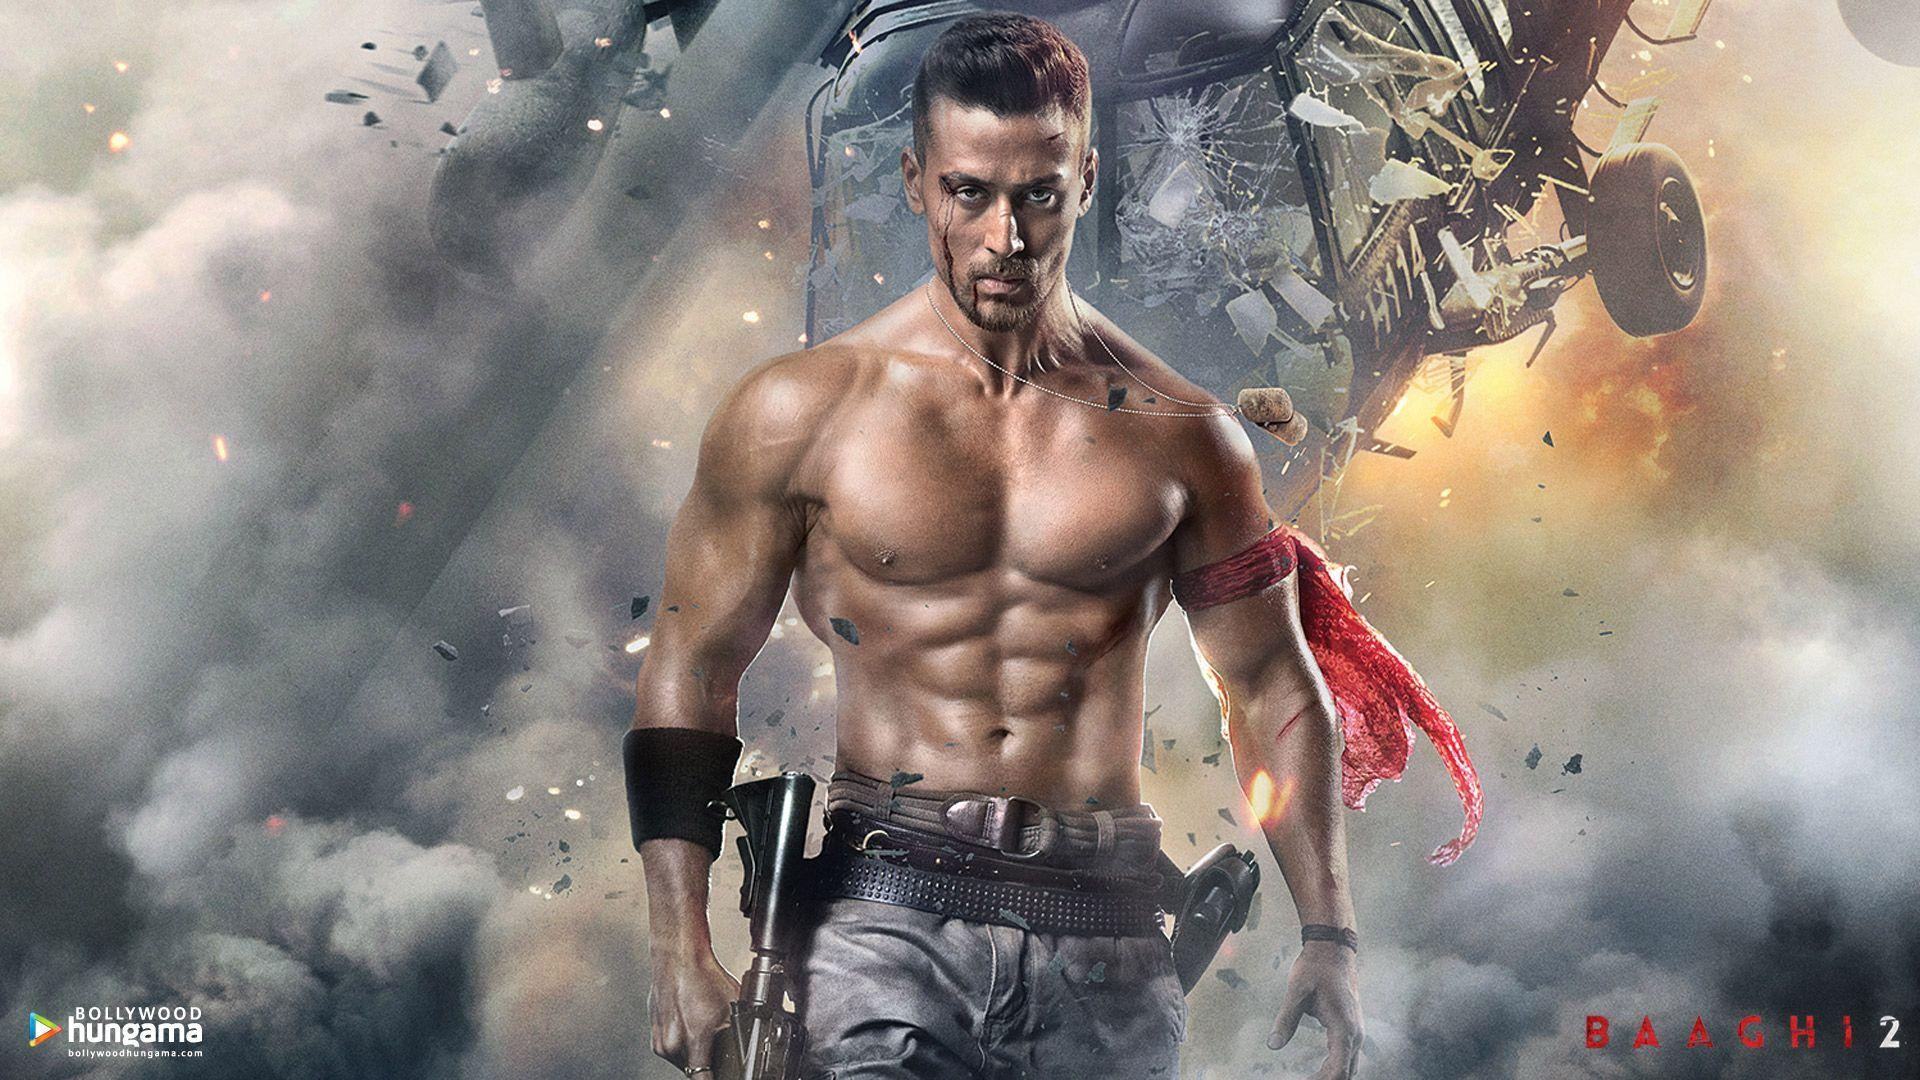 Baaghi 2 Wallpapers Wallpaper Cave